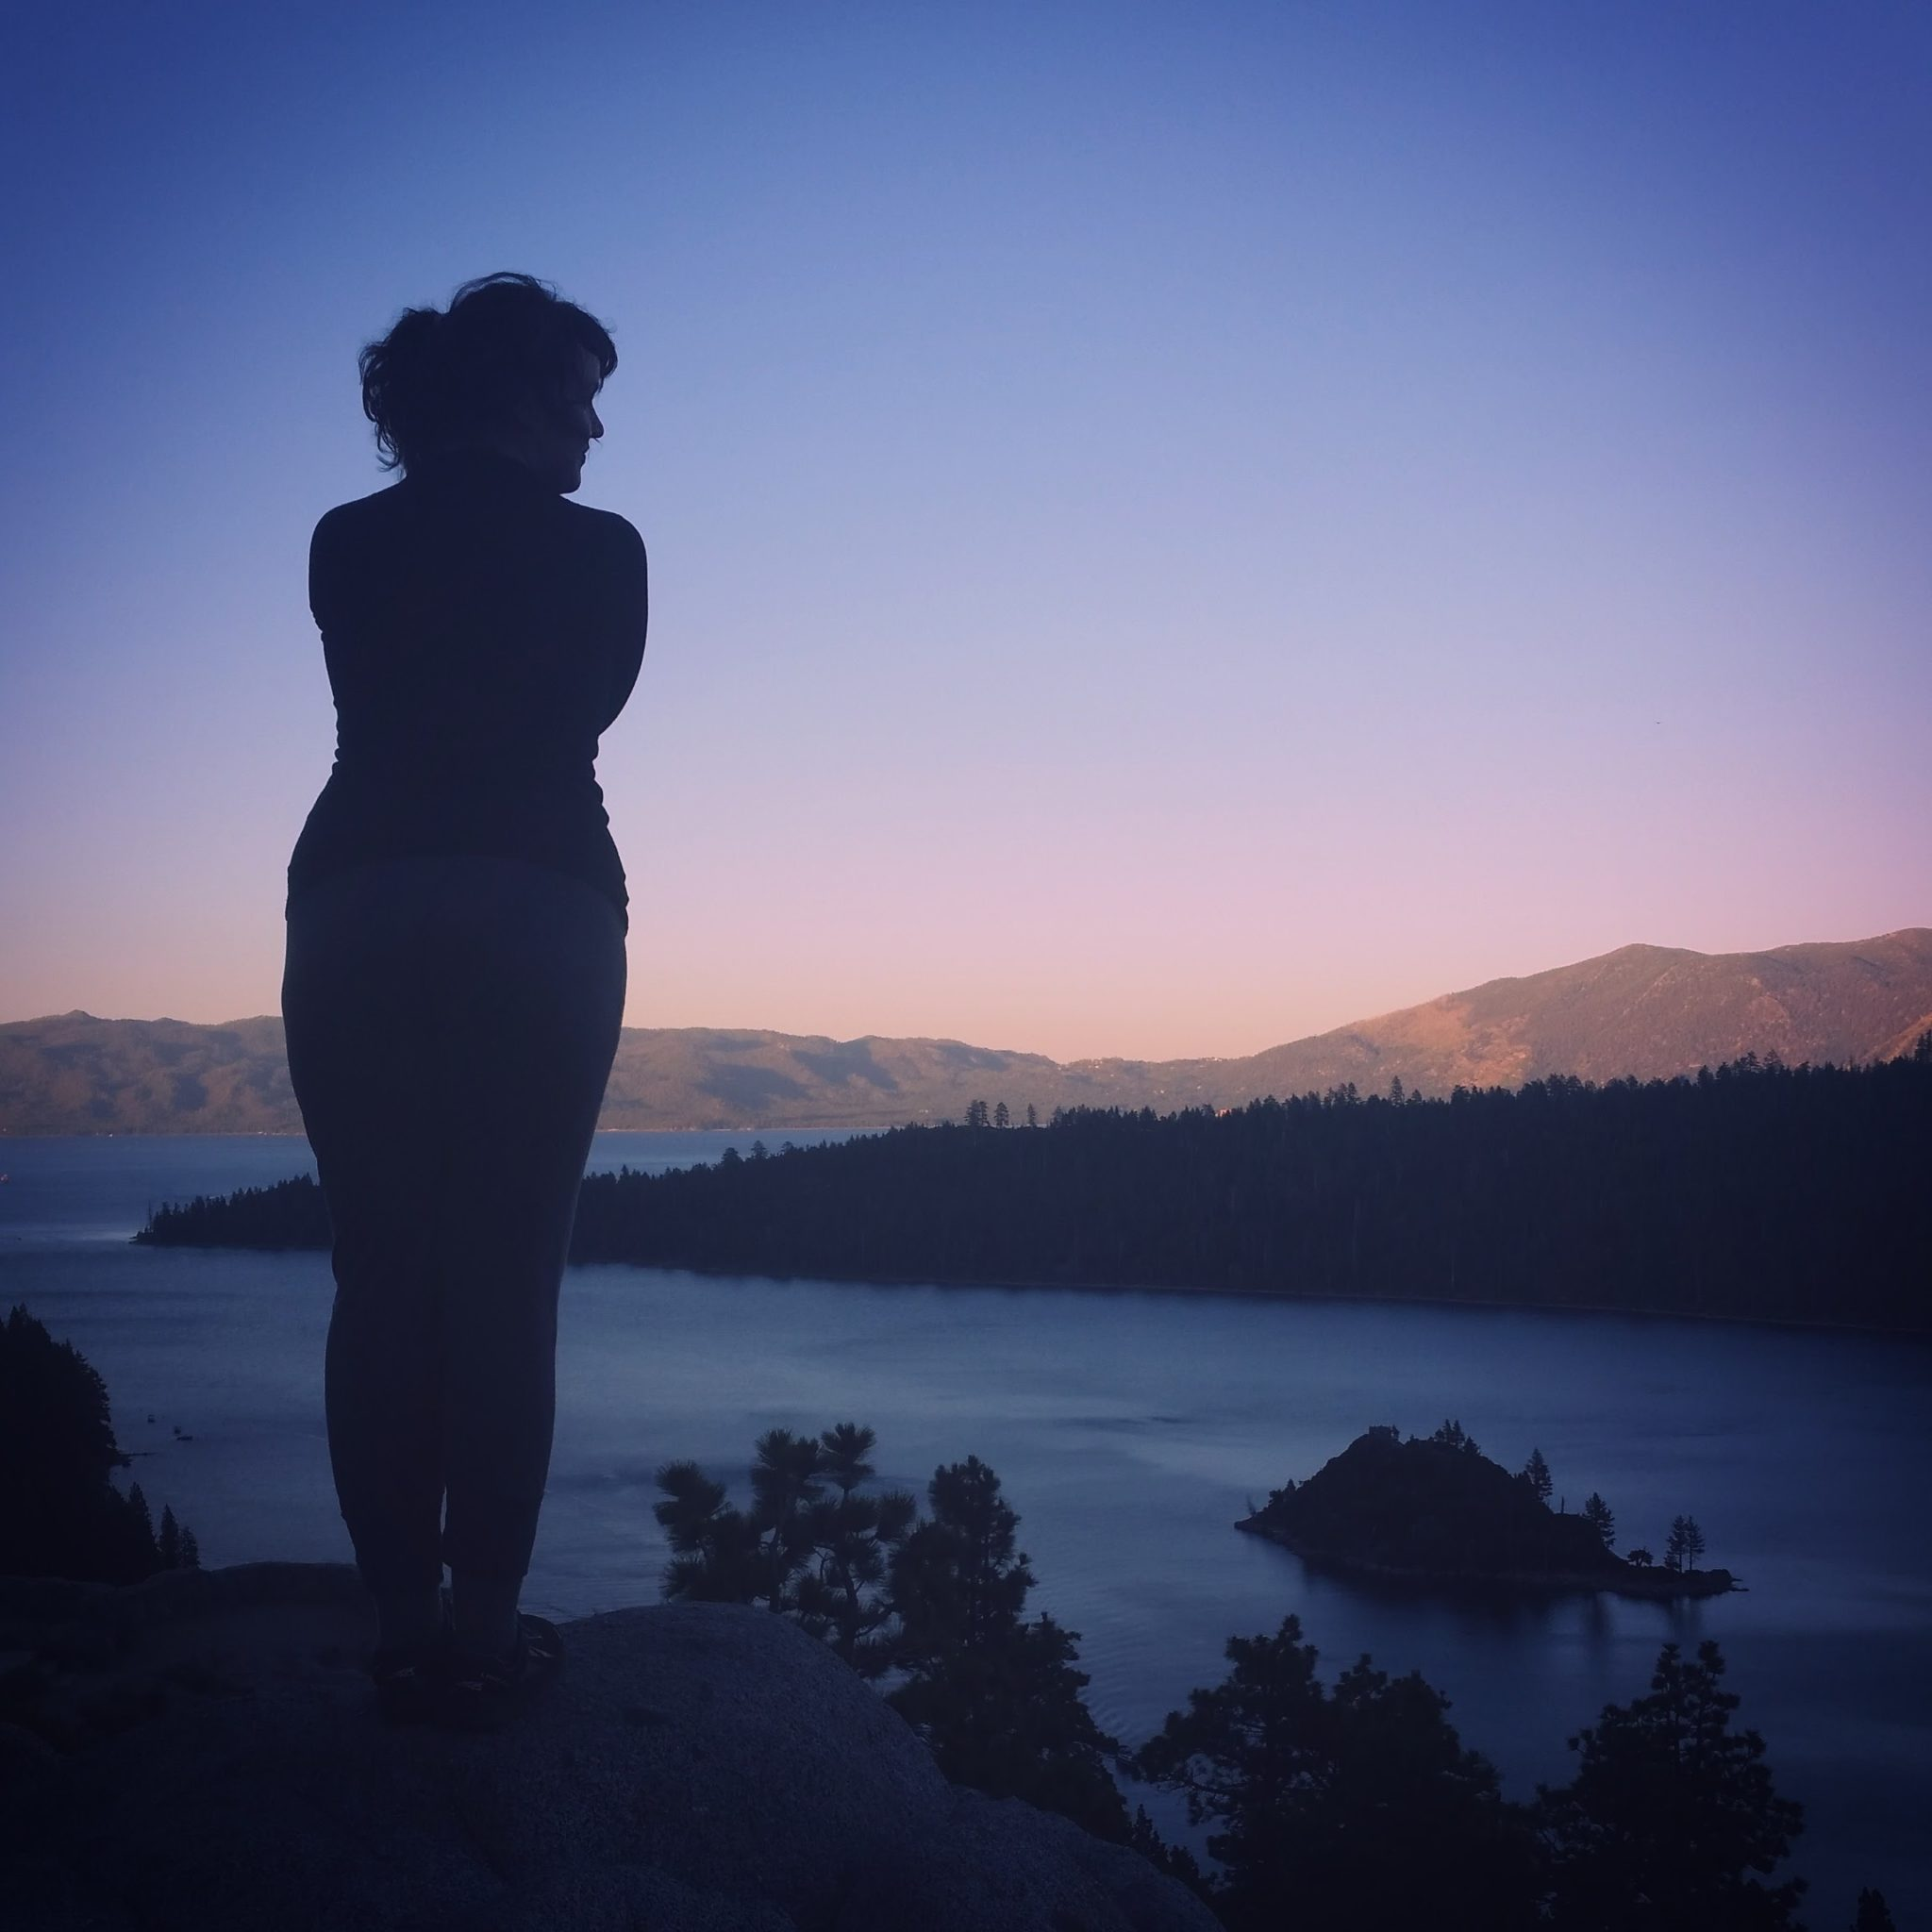 Looking out over Lake Tahoe at Sunset